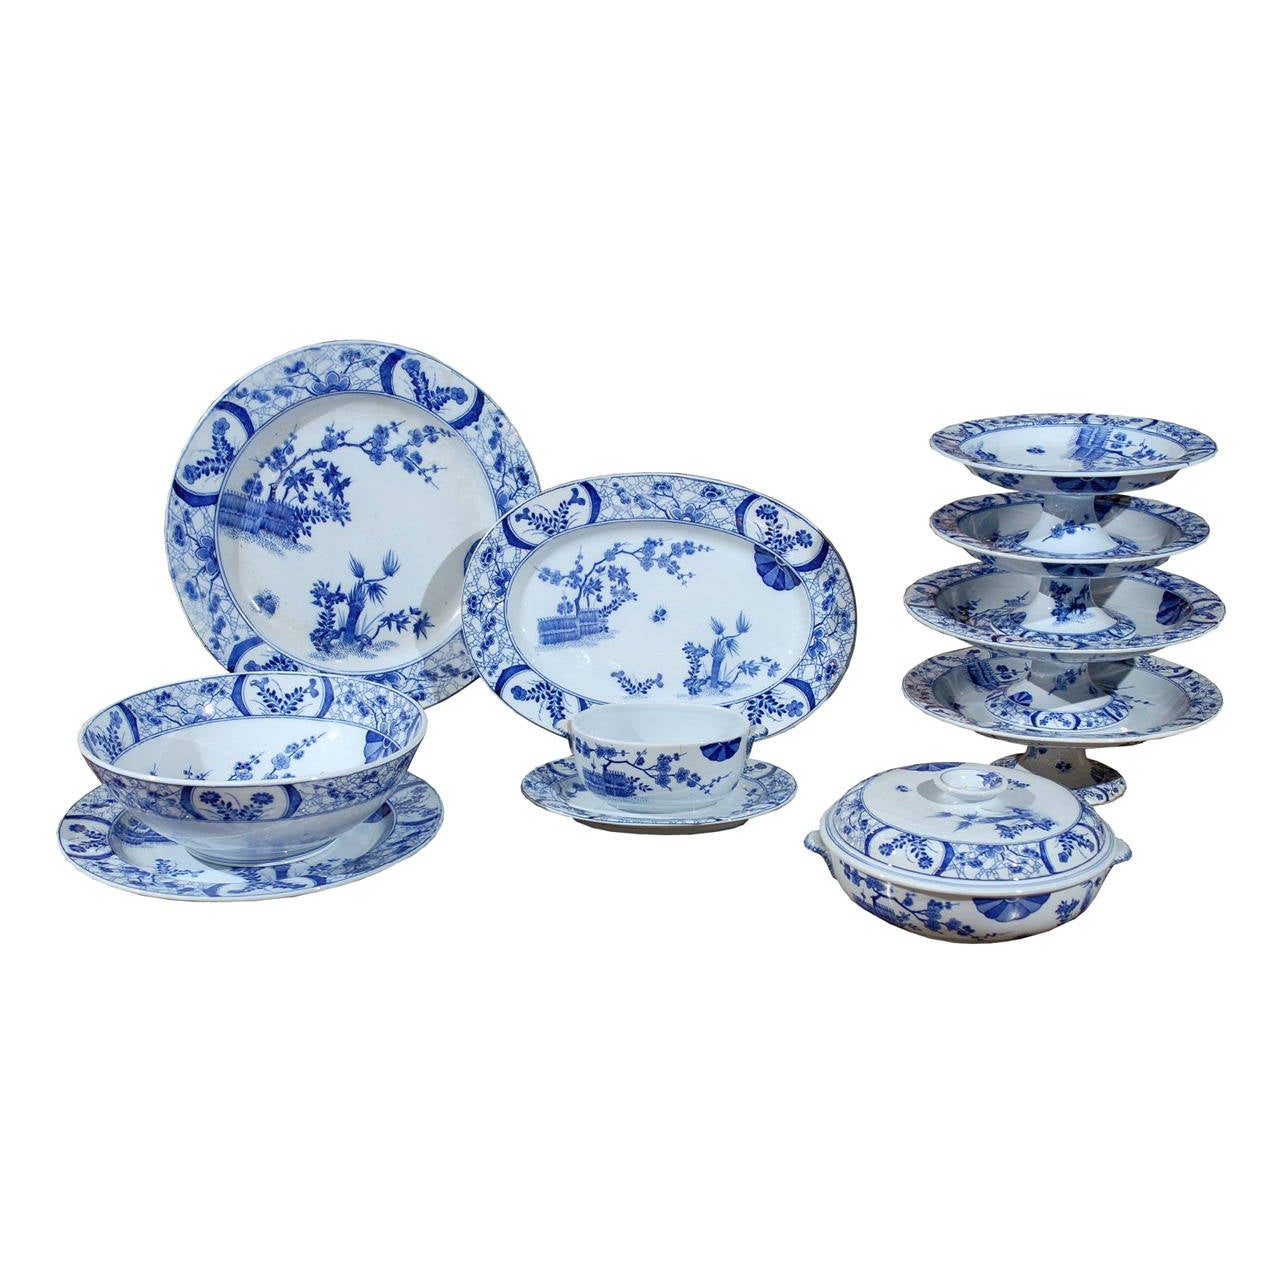 85-Piece Blue and White Japonisme Porcelain Dinnerware Designed by Claude Monet For Sale  sc 1 st  1stDibs & 85-Piece Blue and White Japonisme Porcelain Dinnerware Designed by ...